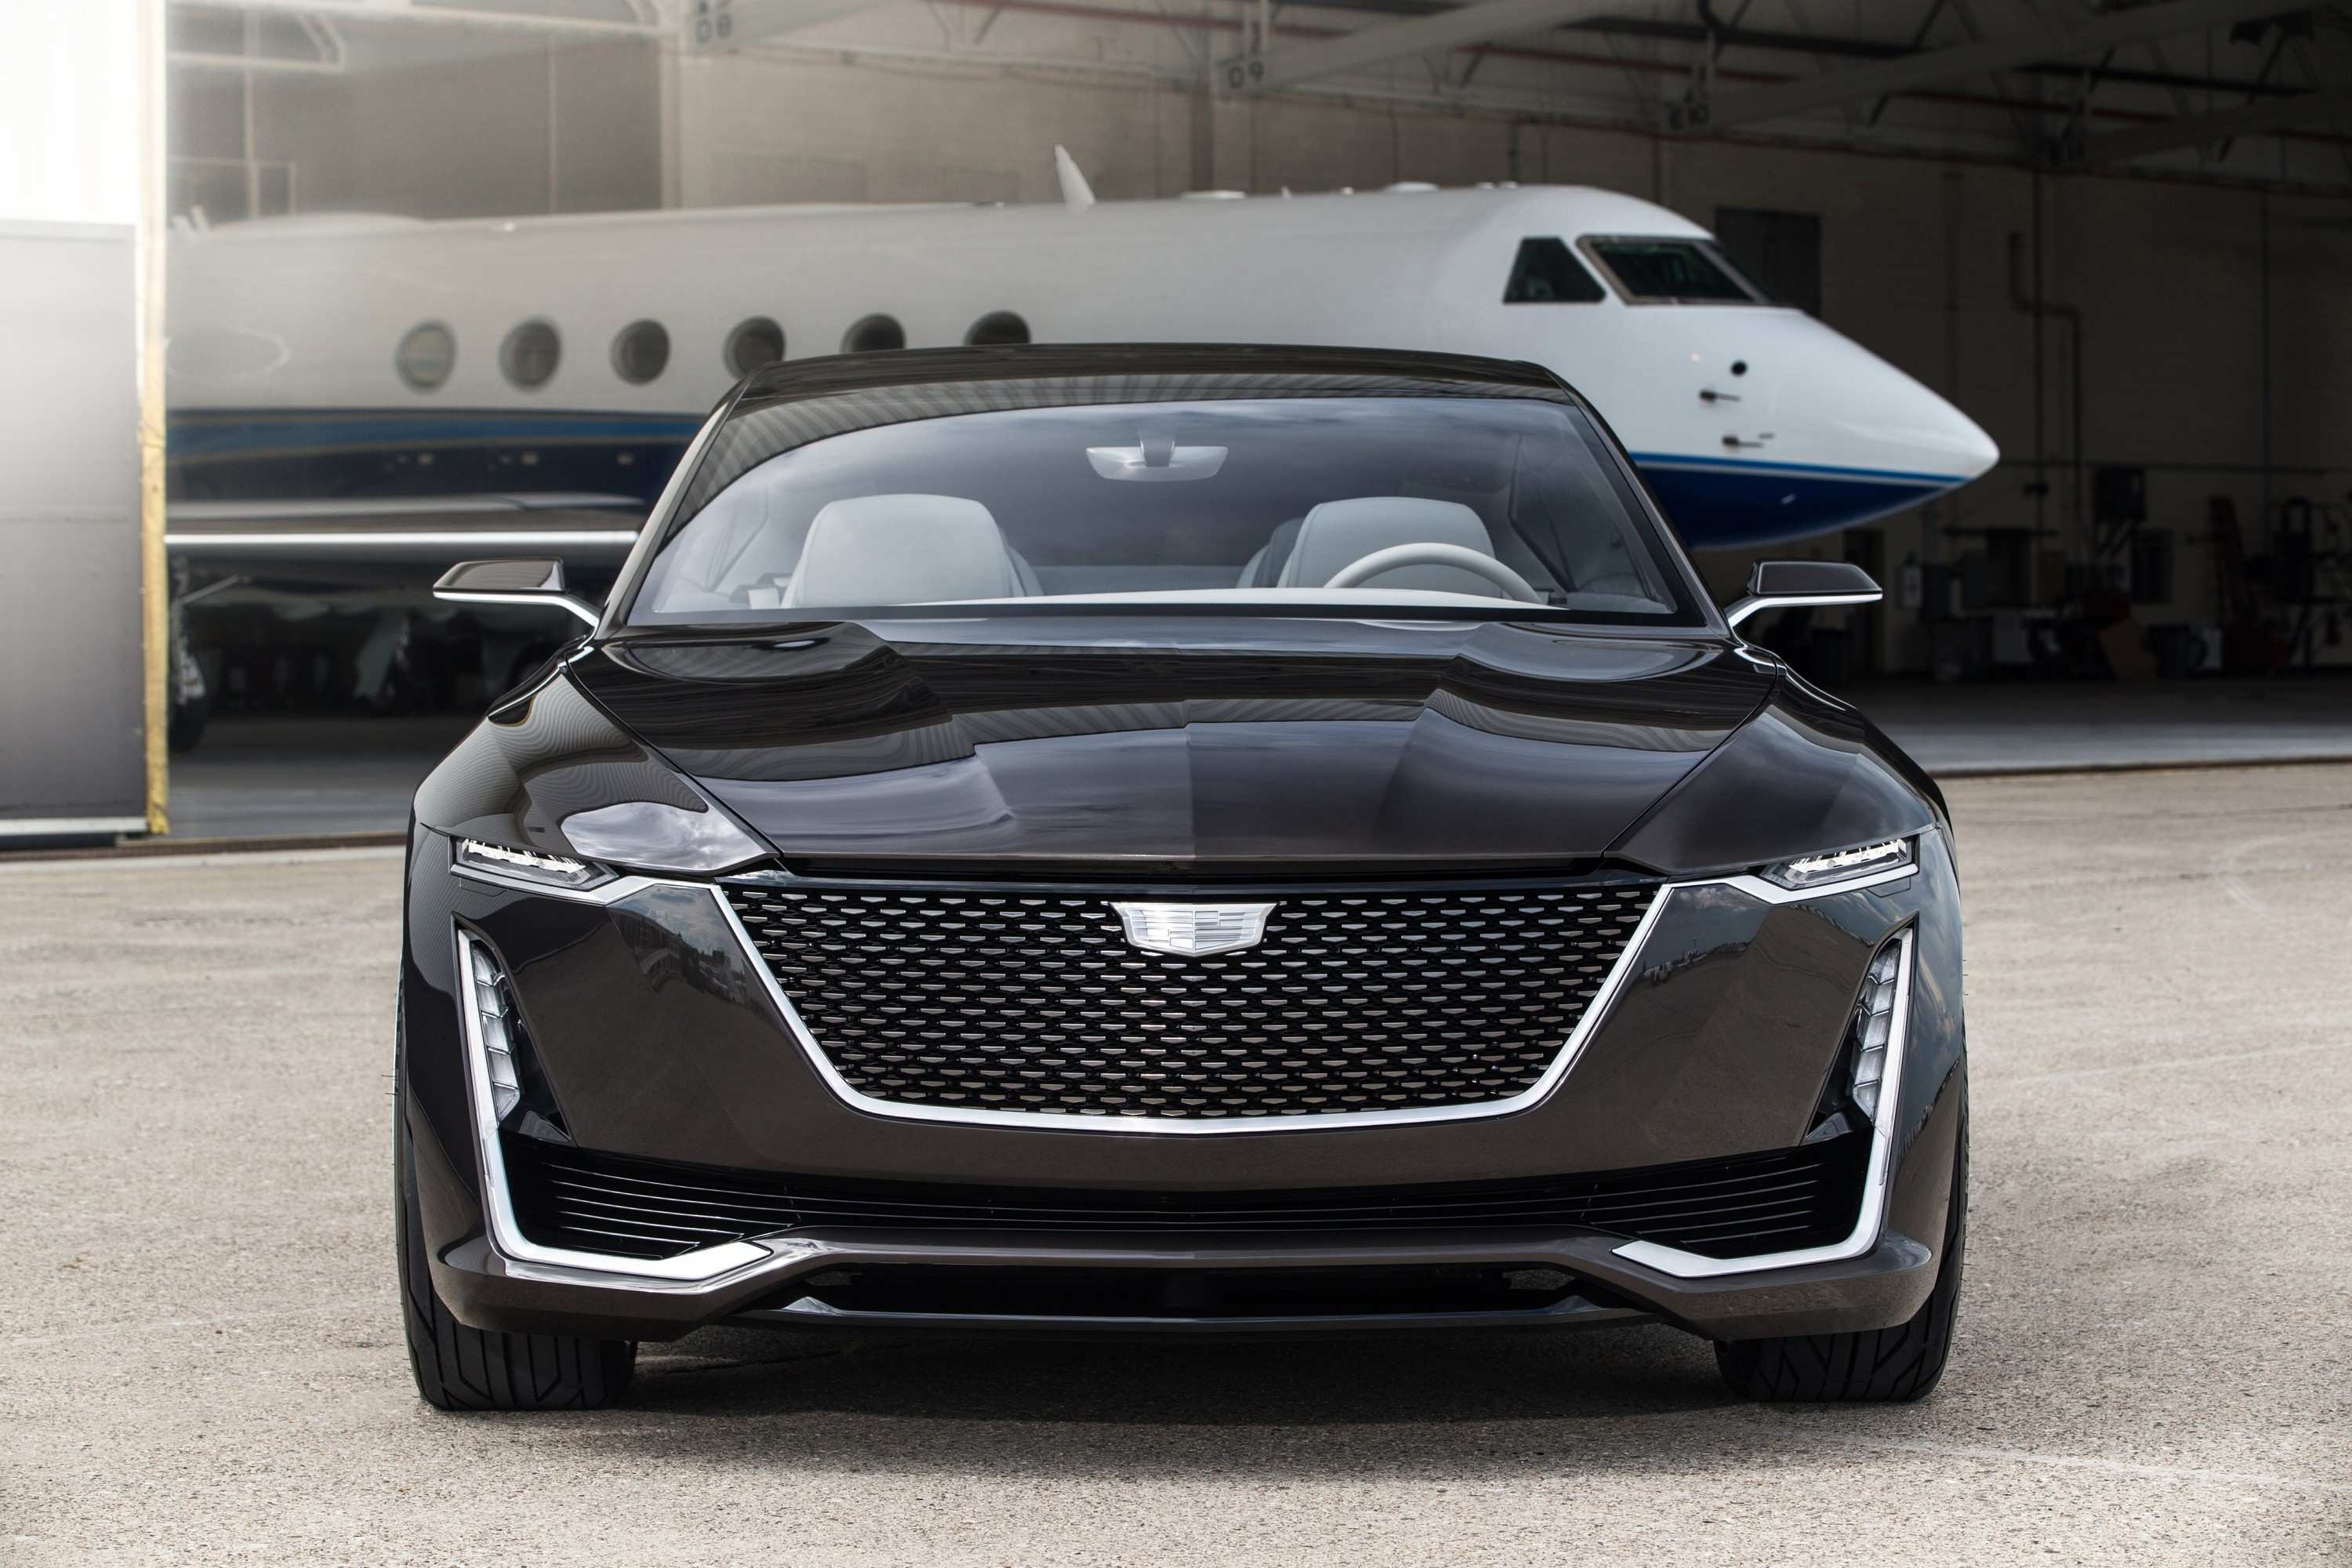 35 A New Cadillac Sedans For 2020 Price And Release Date